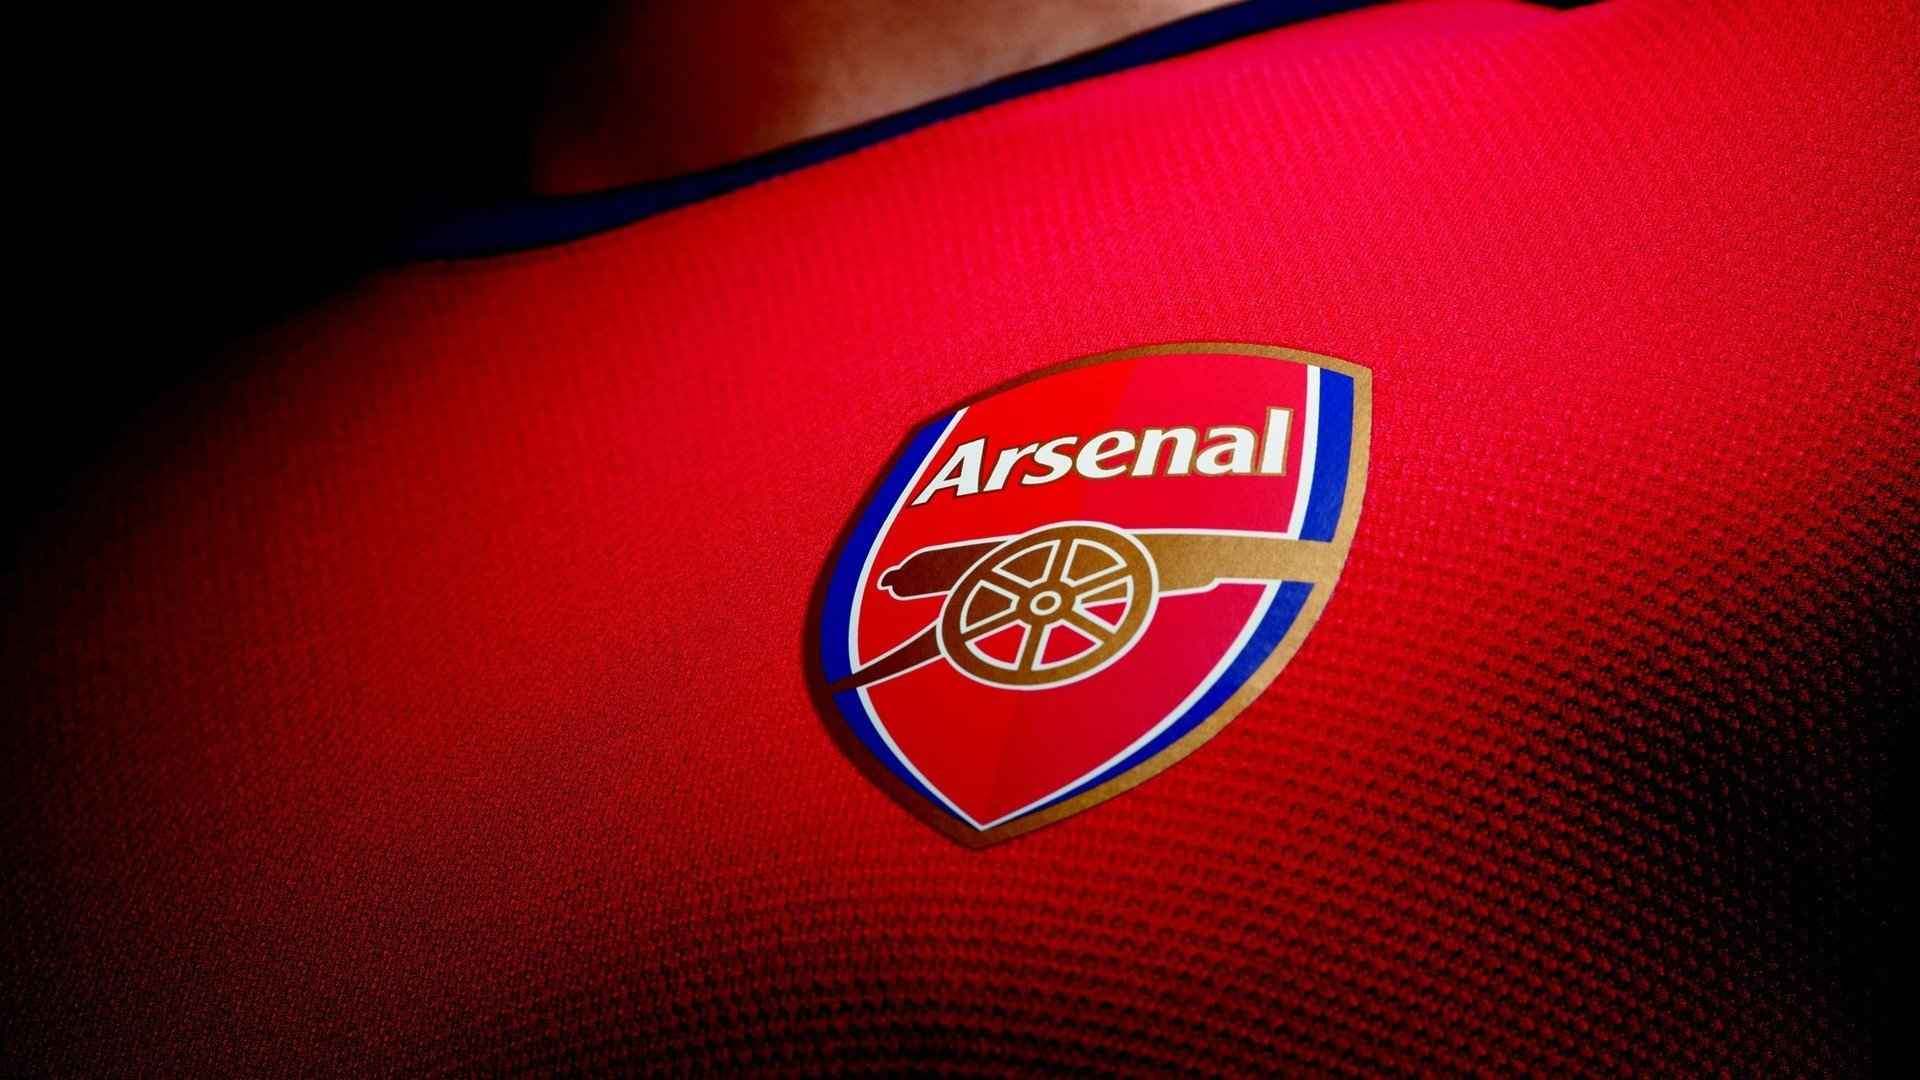 Awesome Arsenal F.C. free wallpaper ID:444778 for hd 1920x1080 desktop